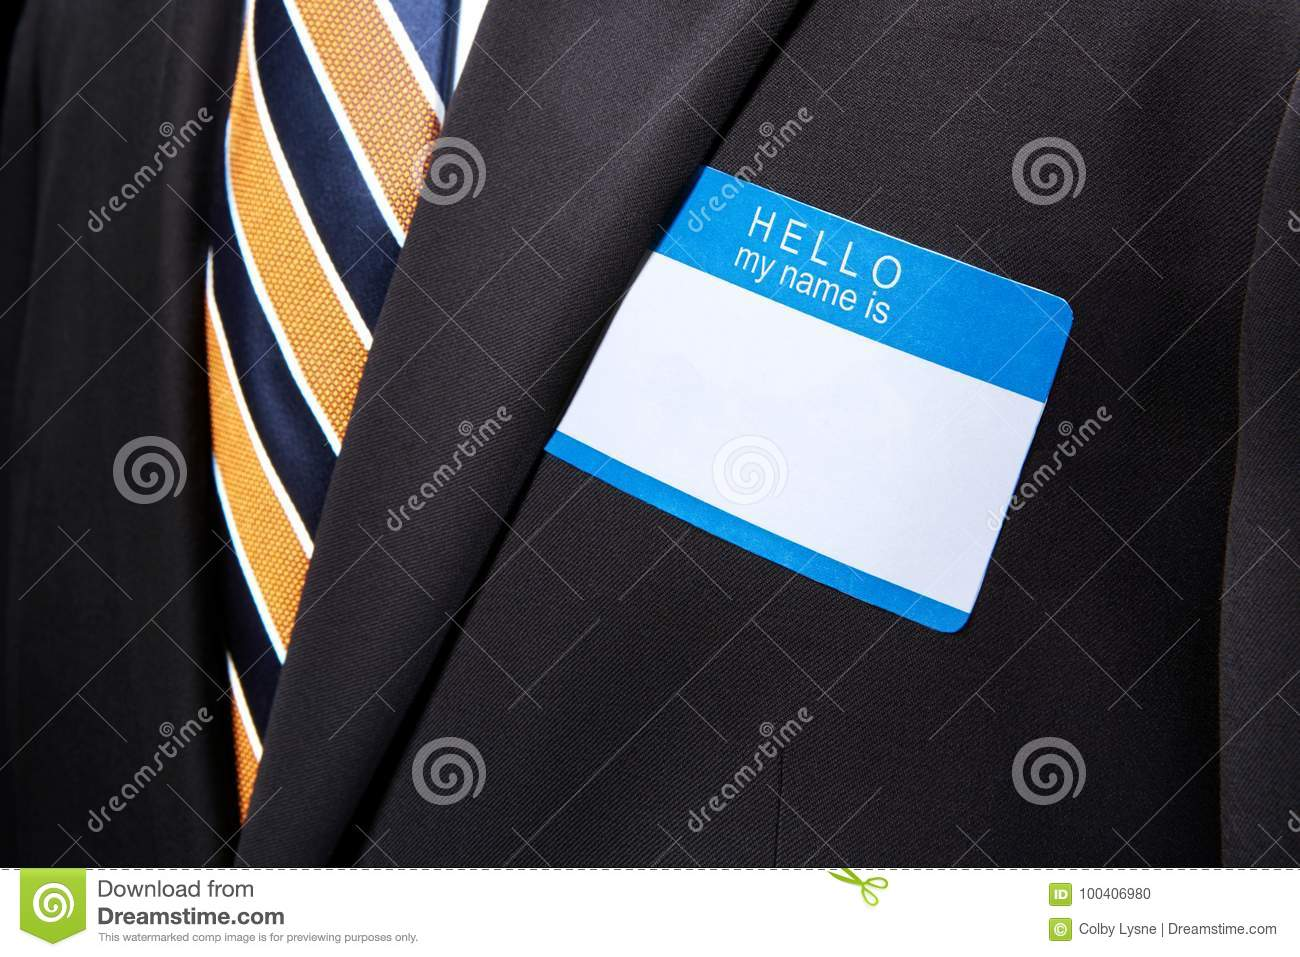 Man wearing black business suit and necktie